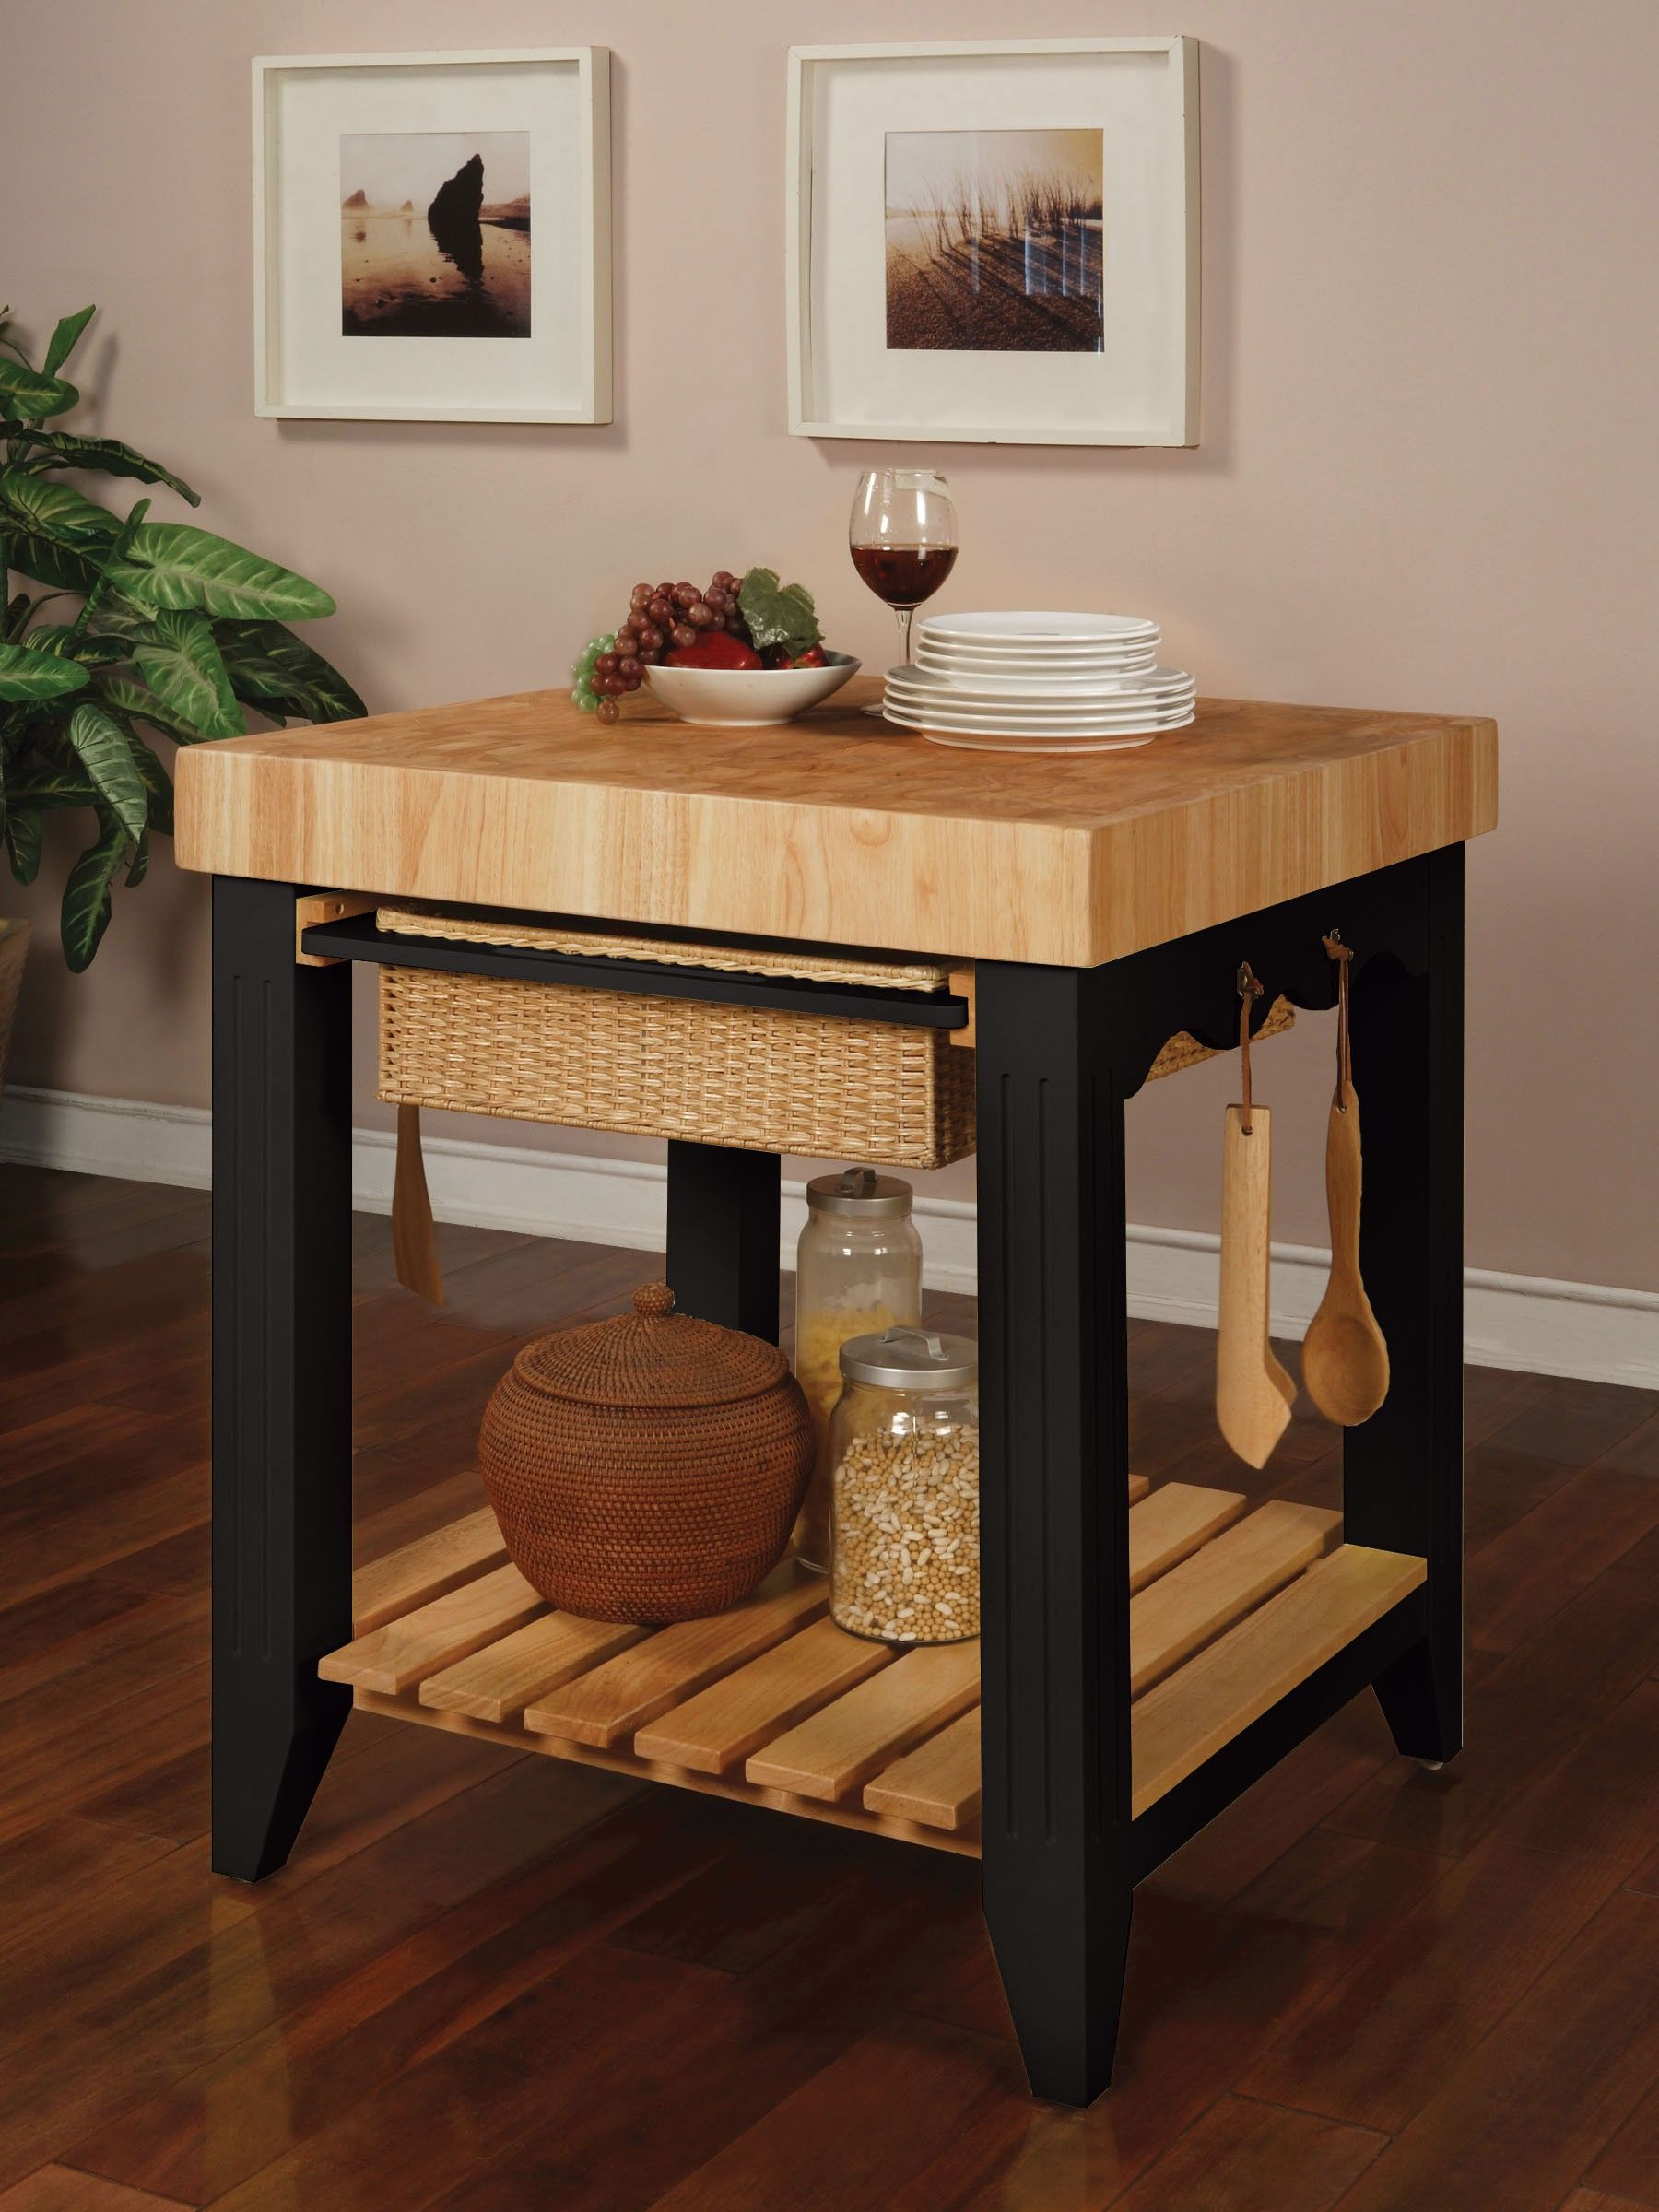 White kitchen island with butcher block top and 4 legs black wooden butcher block with natural